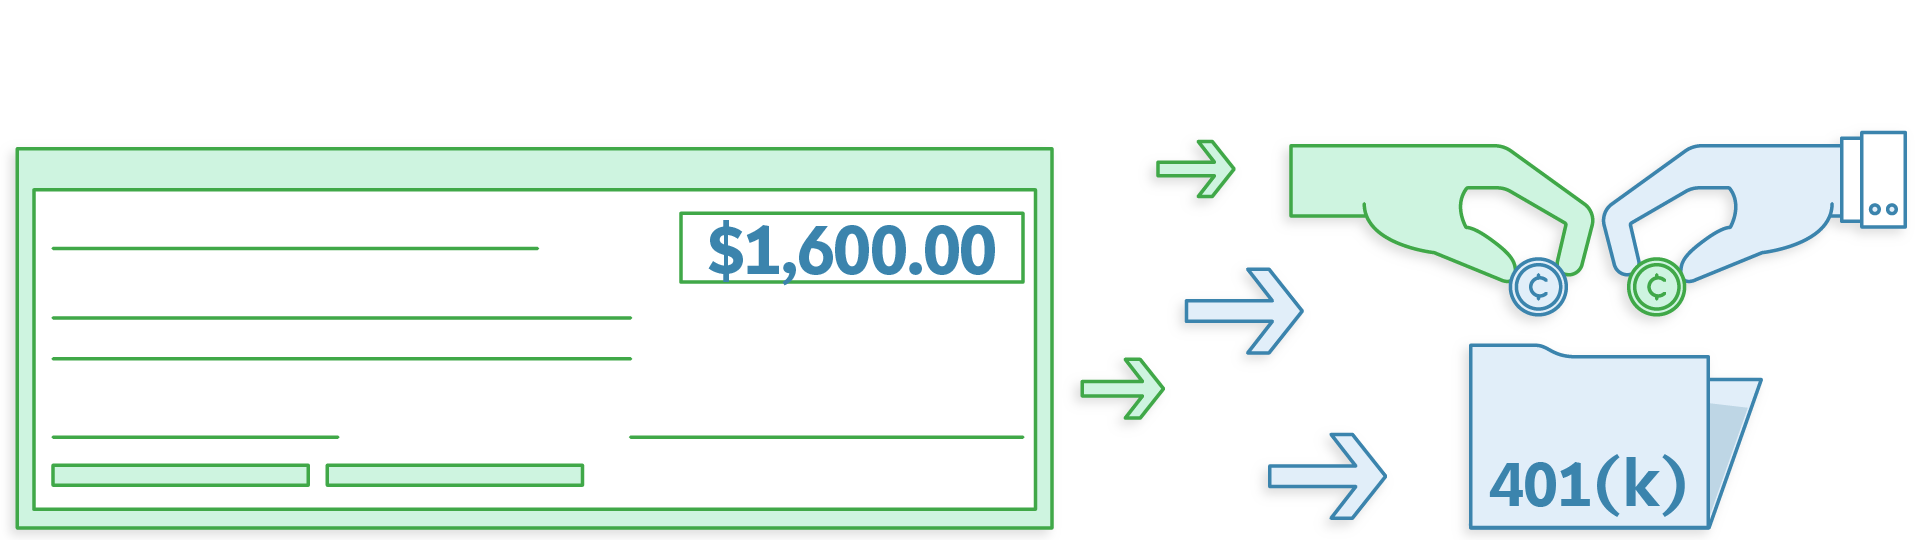 Illustration of a check with arrows pointing toward hands putting some of the money into a retirement account